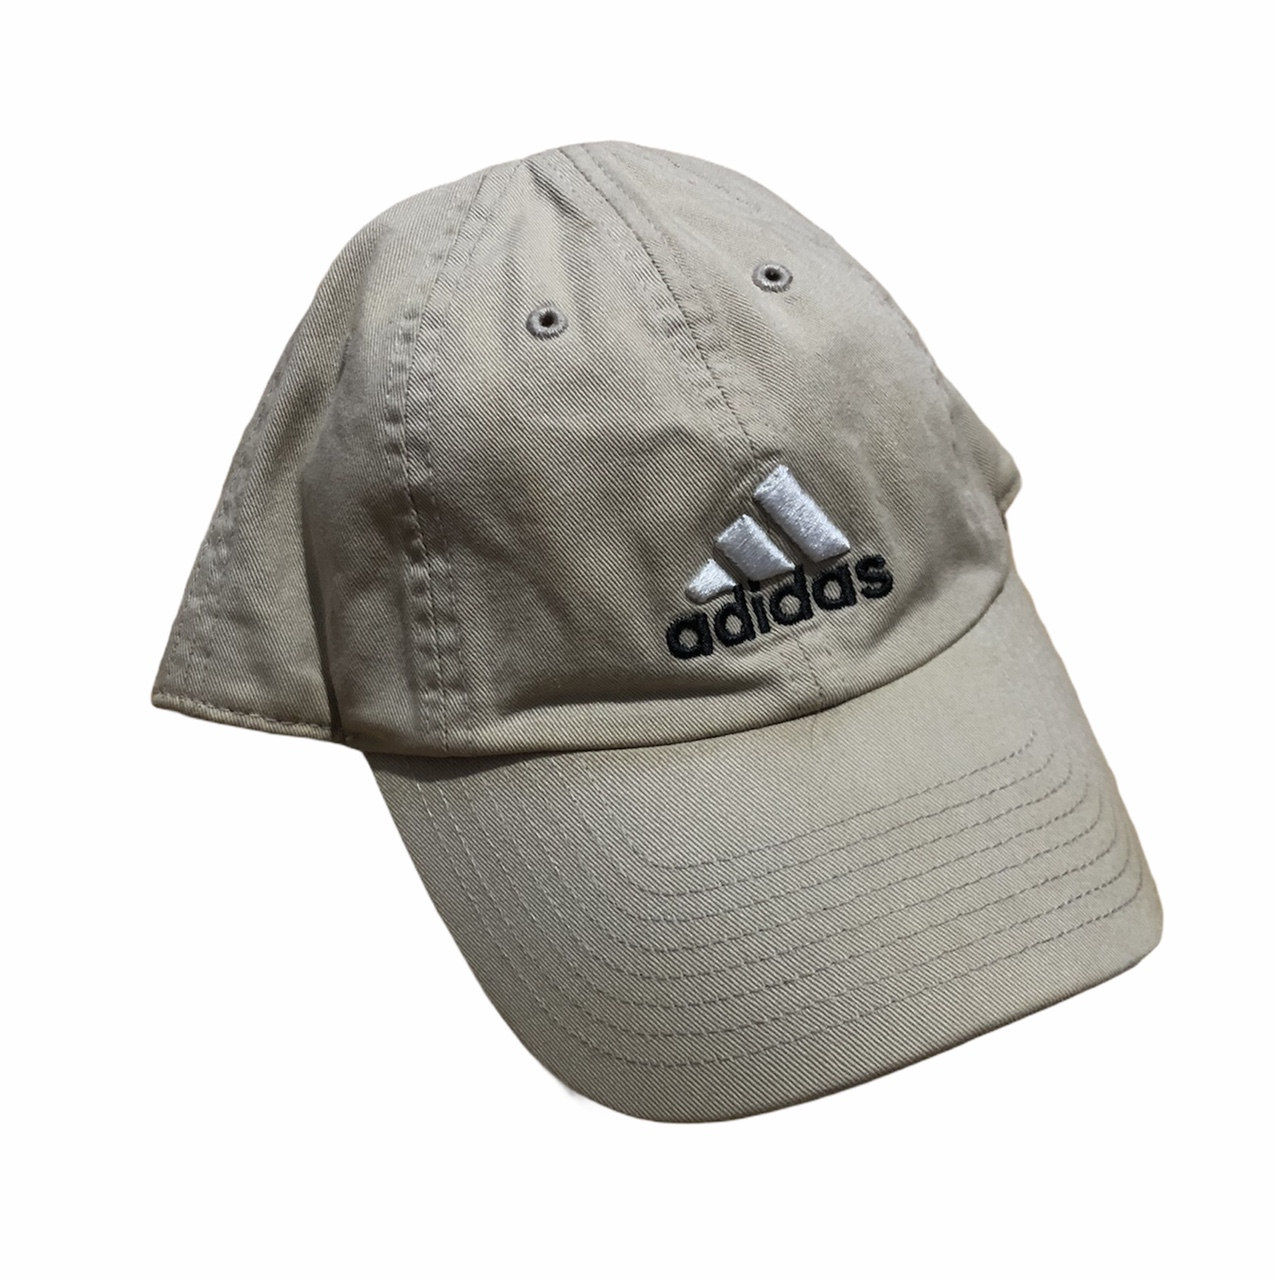 Product Image 1 - Vintage Adidas strap back Condition: Preowned Dm